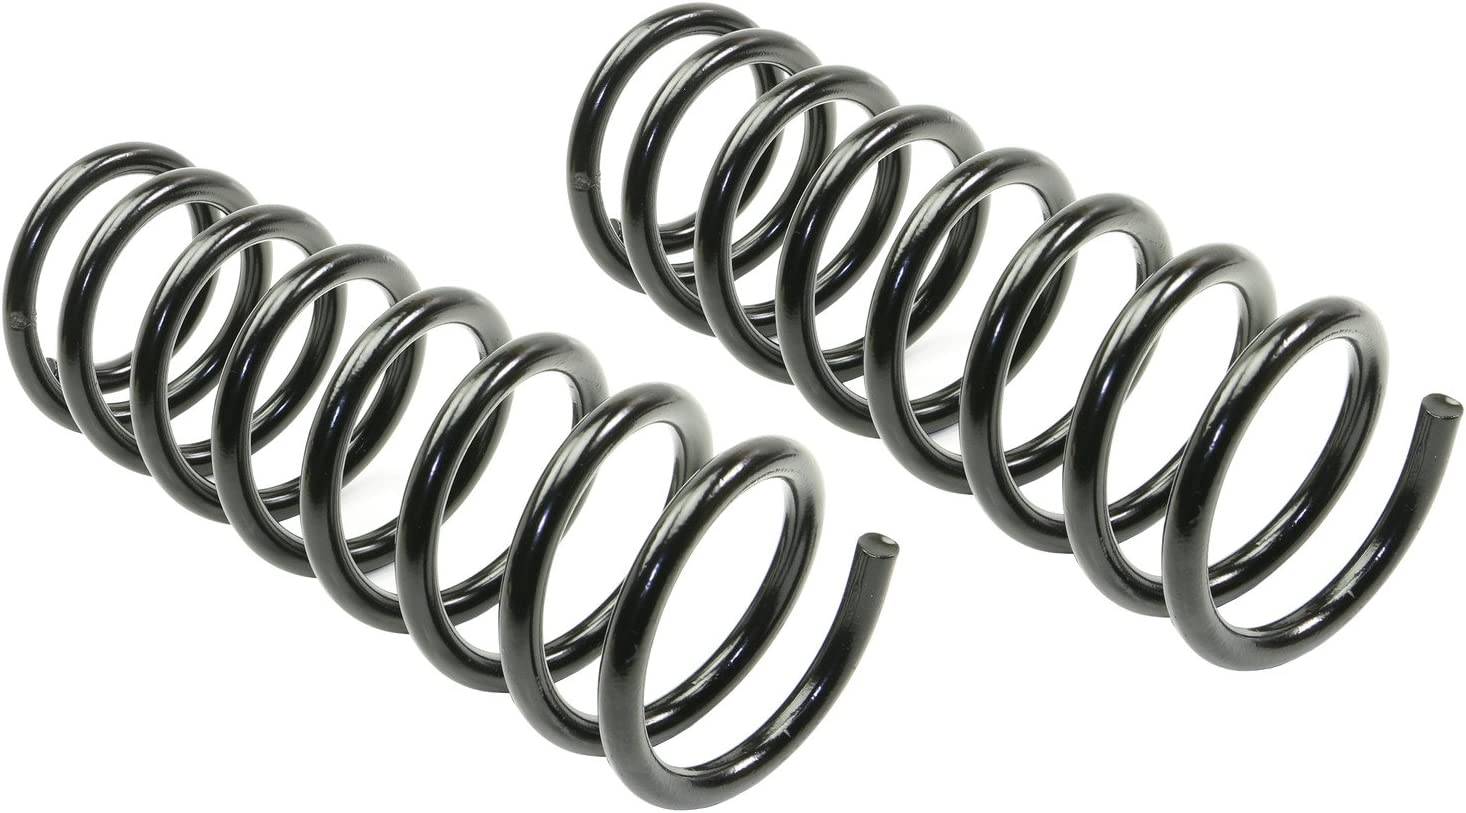 B078WS4RXK MOOG Chassis Products 81683 Coil Spring Set, 2 Pack 71rC4LyNDyL